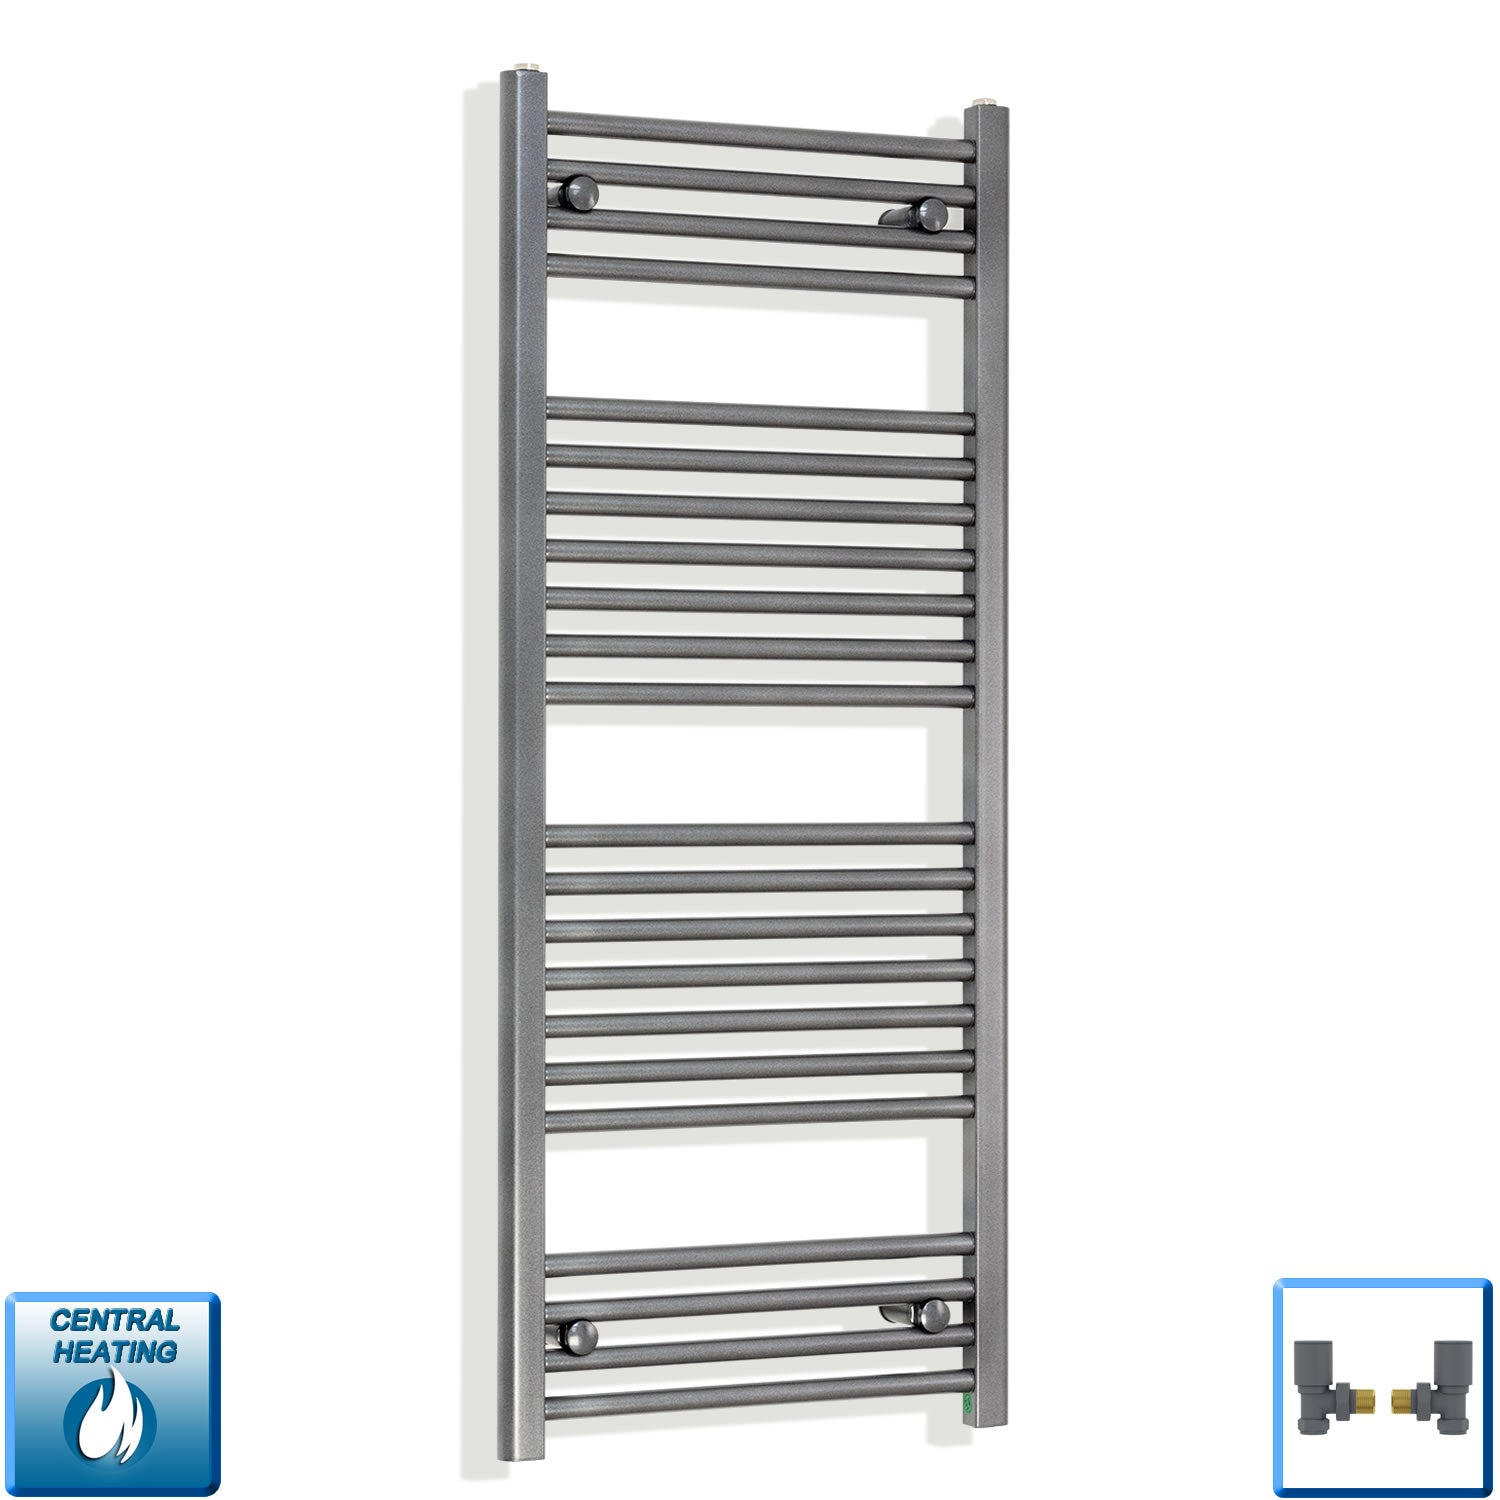 1200 mm High 500 mm Wide Heated Flat Towel Rail Radiator Anthracite Central heating with angled valves